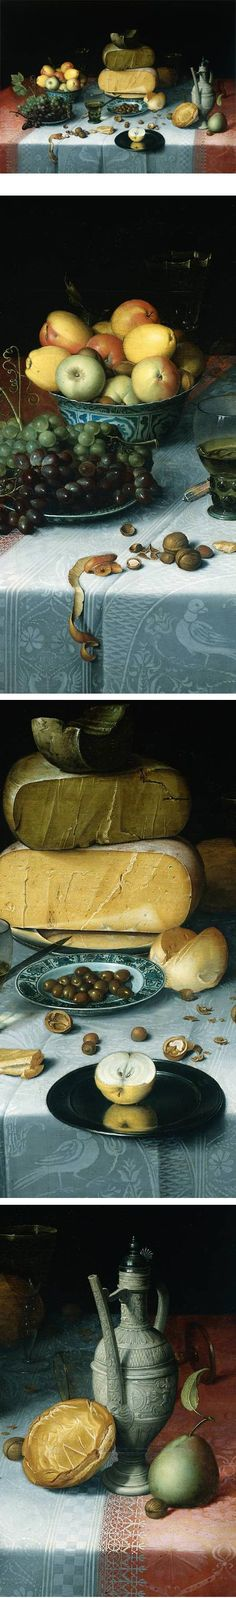 Detail from: Still Life with Cheeses by Floris van Dijck (1615-1620). Rijksmusum.